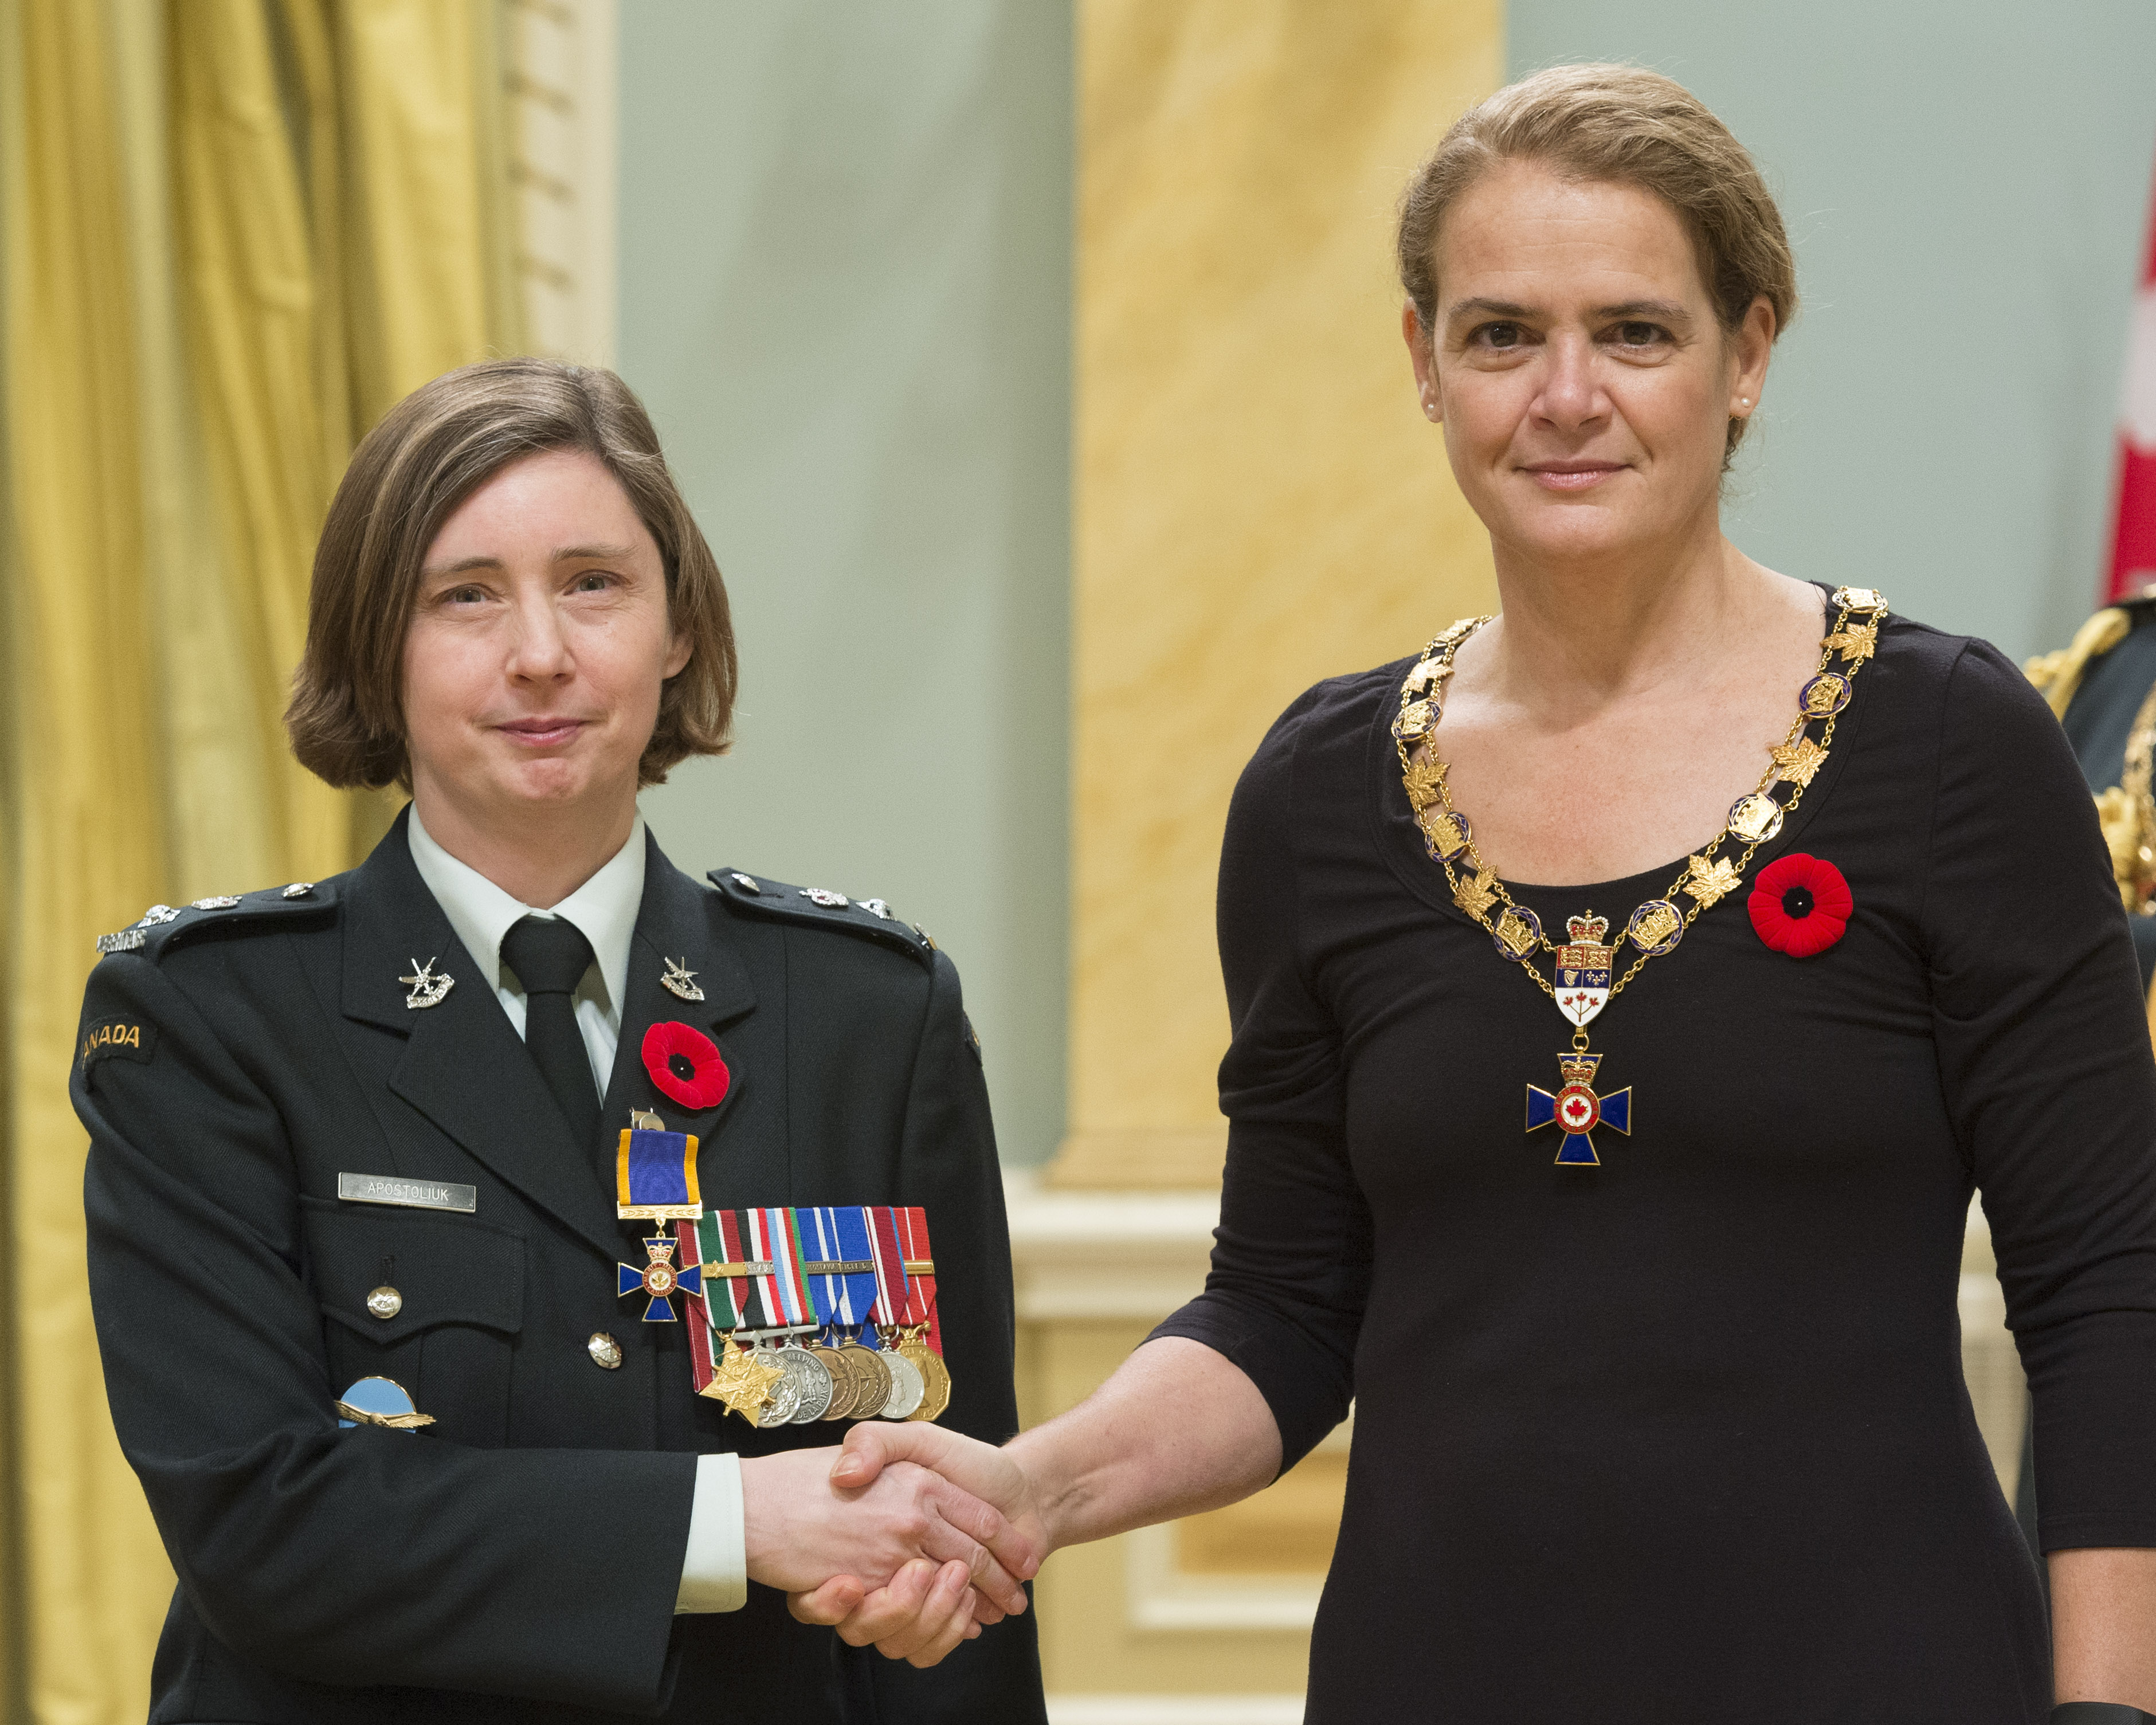 Governor General and Commander-in-Chief of Canada Julie Payette inducts Lieutenant-Colonel Holly Apostoliuk into the Order of Military Merit at Rideau Hall on November 10, 2017. Lieutenant-Colonel Apostoliuk is senior public affairs officer for the Royal Canadian Air Force. PHOTO: Sergeant Johanie Maheu, Rideau Hall © OSGG, GG05-2017-0395-018